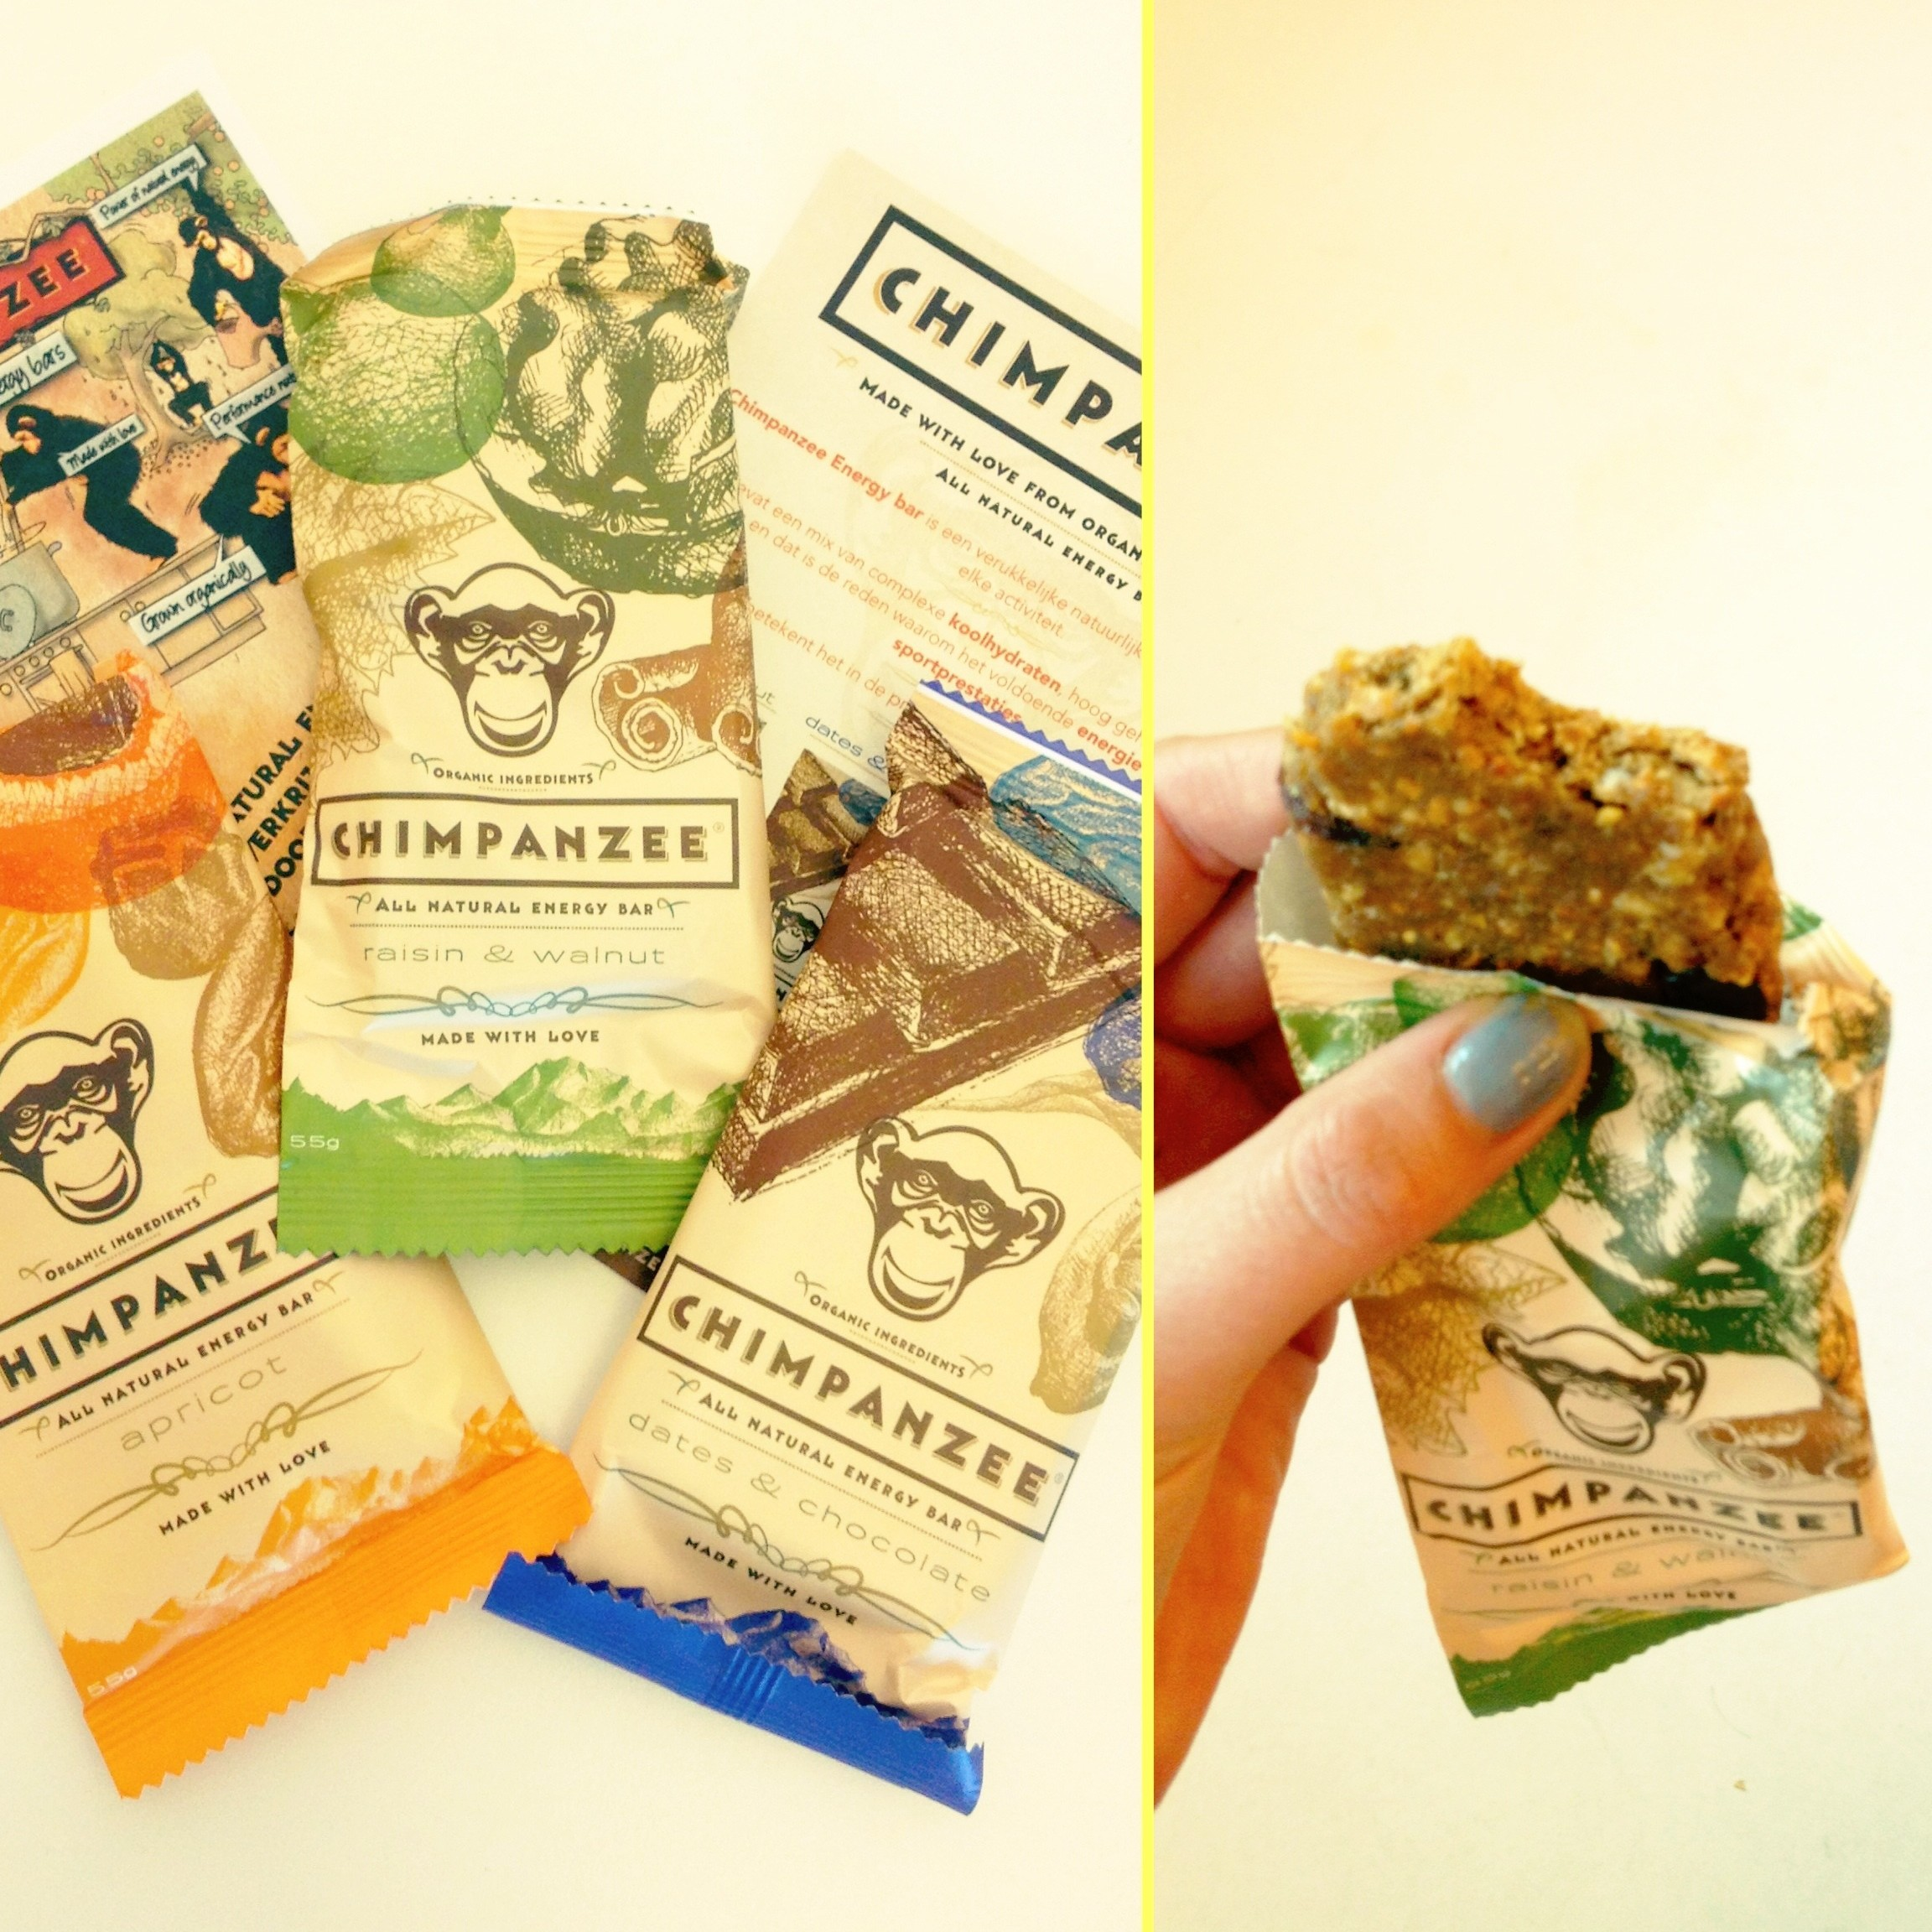 Chimpanzee // Organic & Raw Energy Bars